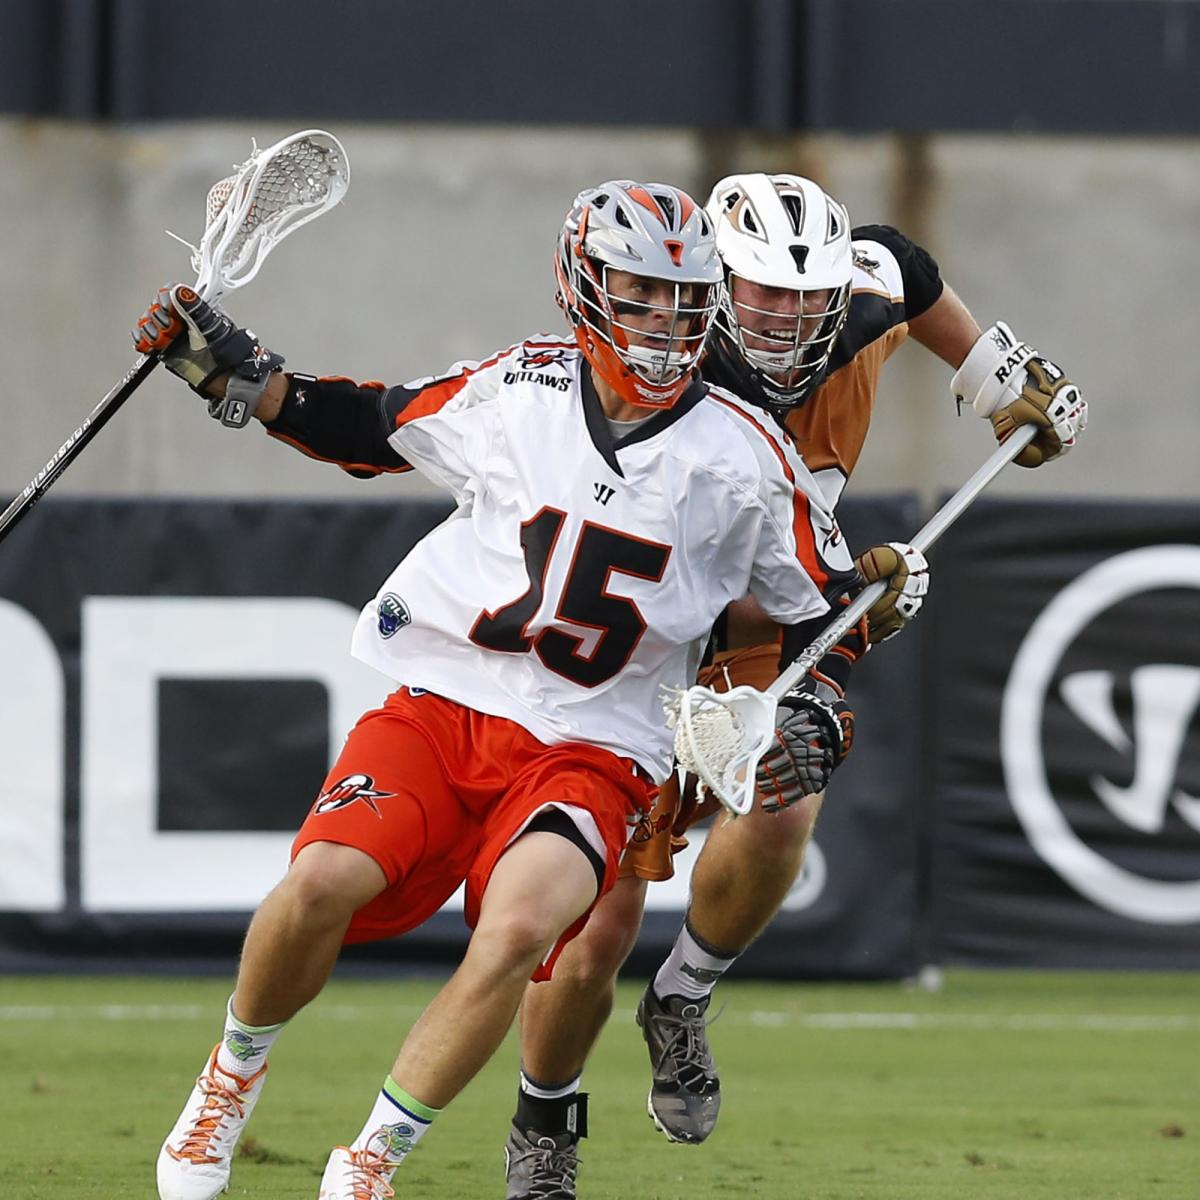 MLL Championship 2014: Score And Recap From Outlaws Vs